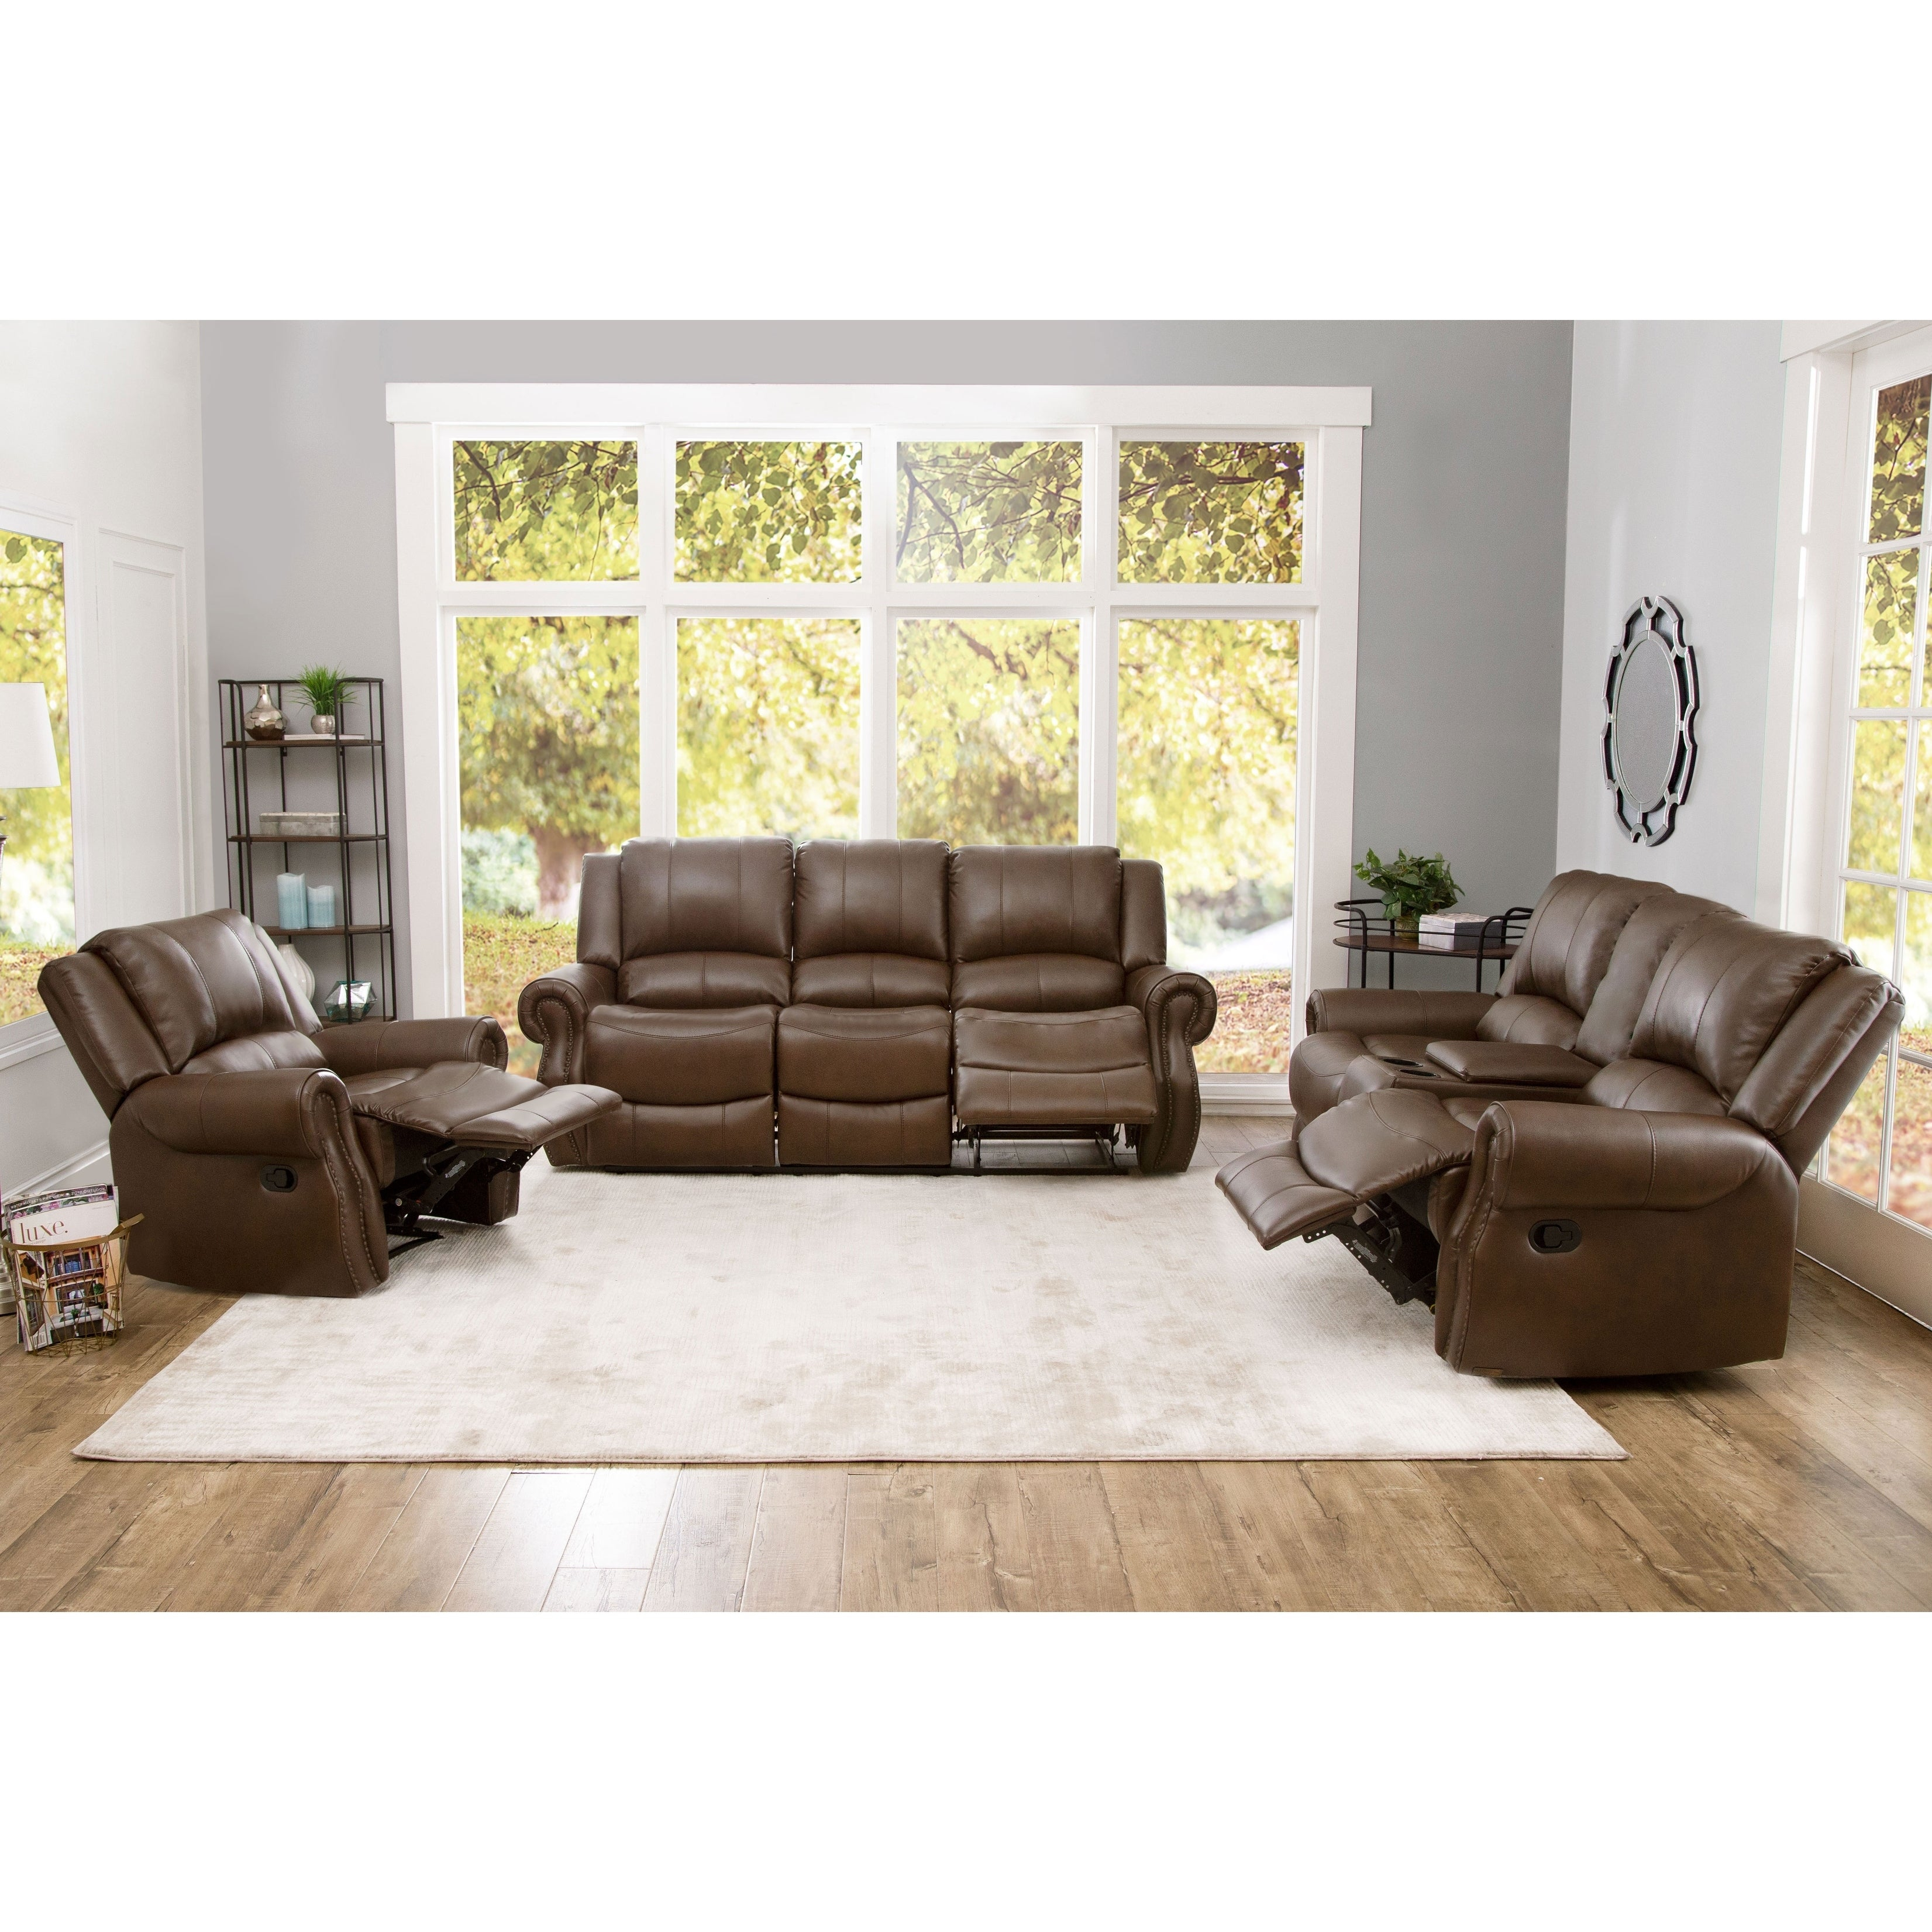 Abson Calabasas Mesa Brown Leather 3 Piece Reclining Living Room Set in 13 Clever Tricks of How to Improve Shop Living Room Sets